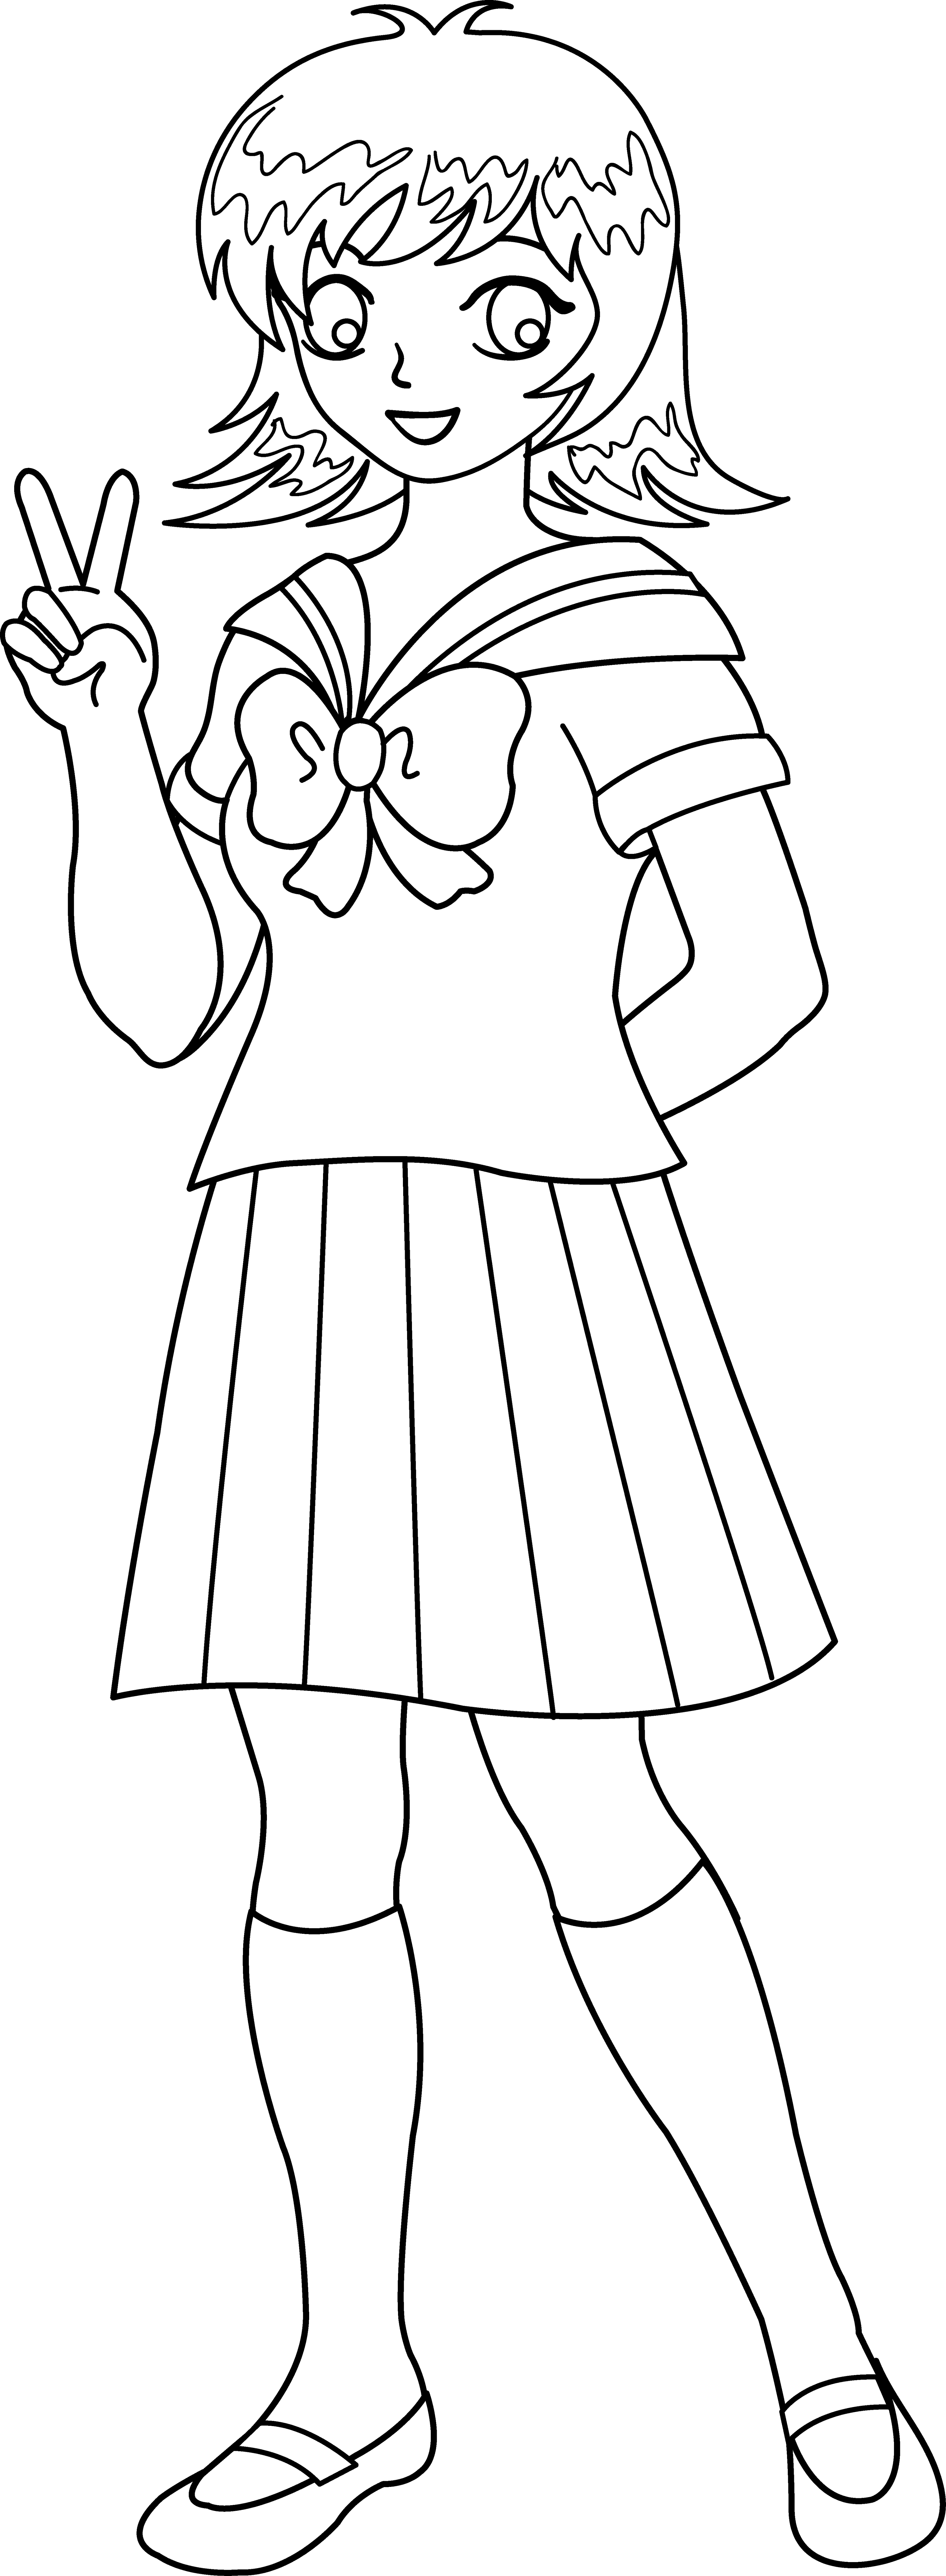 School owl clipart black and white image library Anime School Girl Line Art - Free Clip Art image library